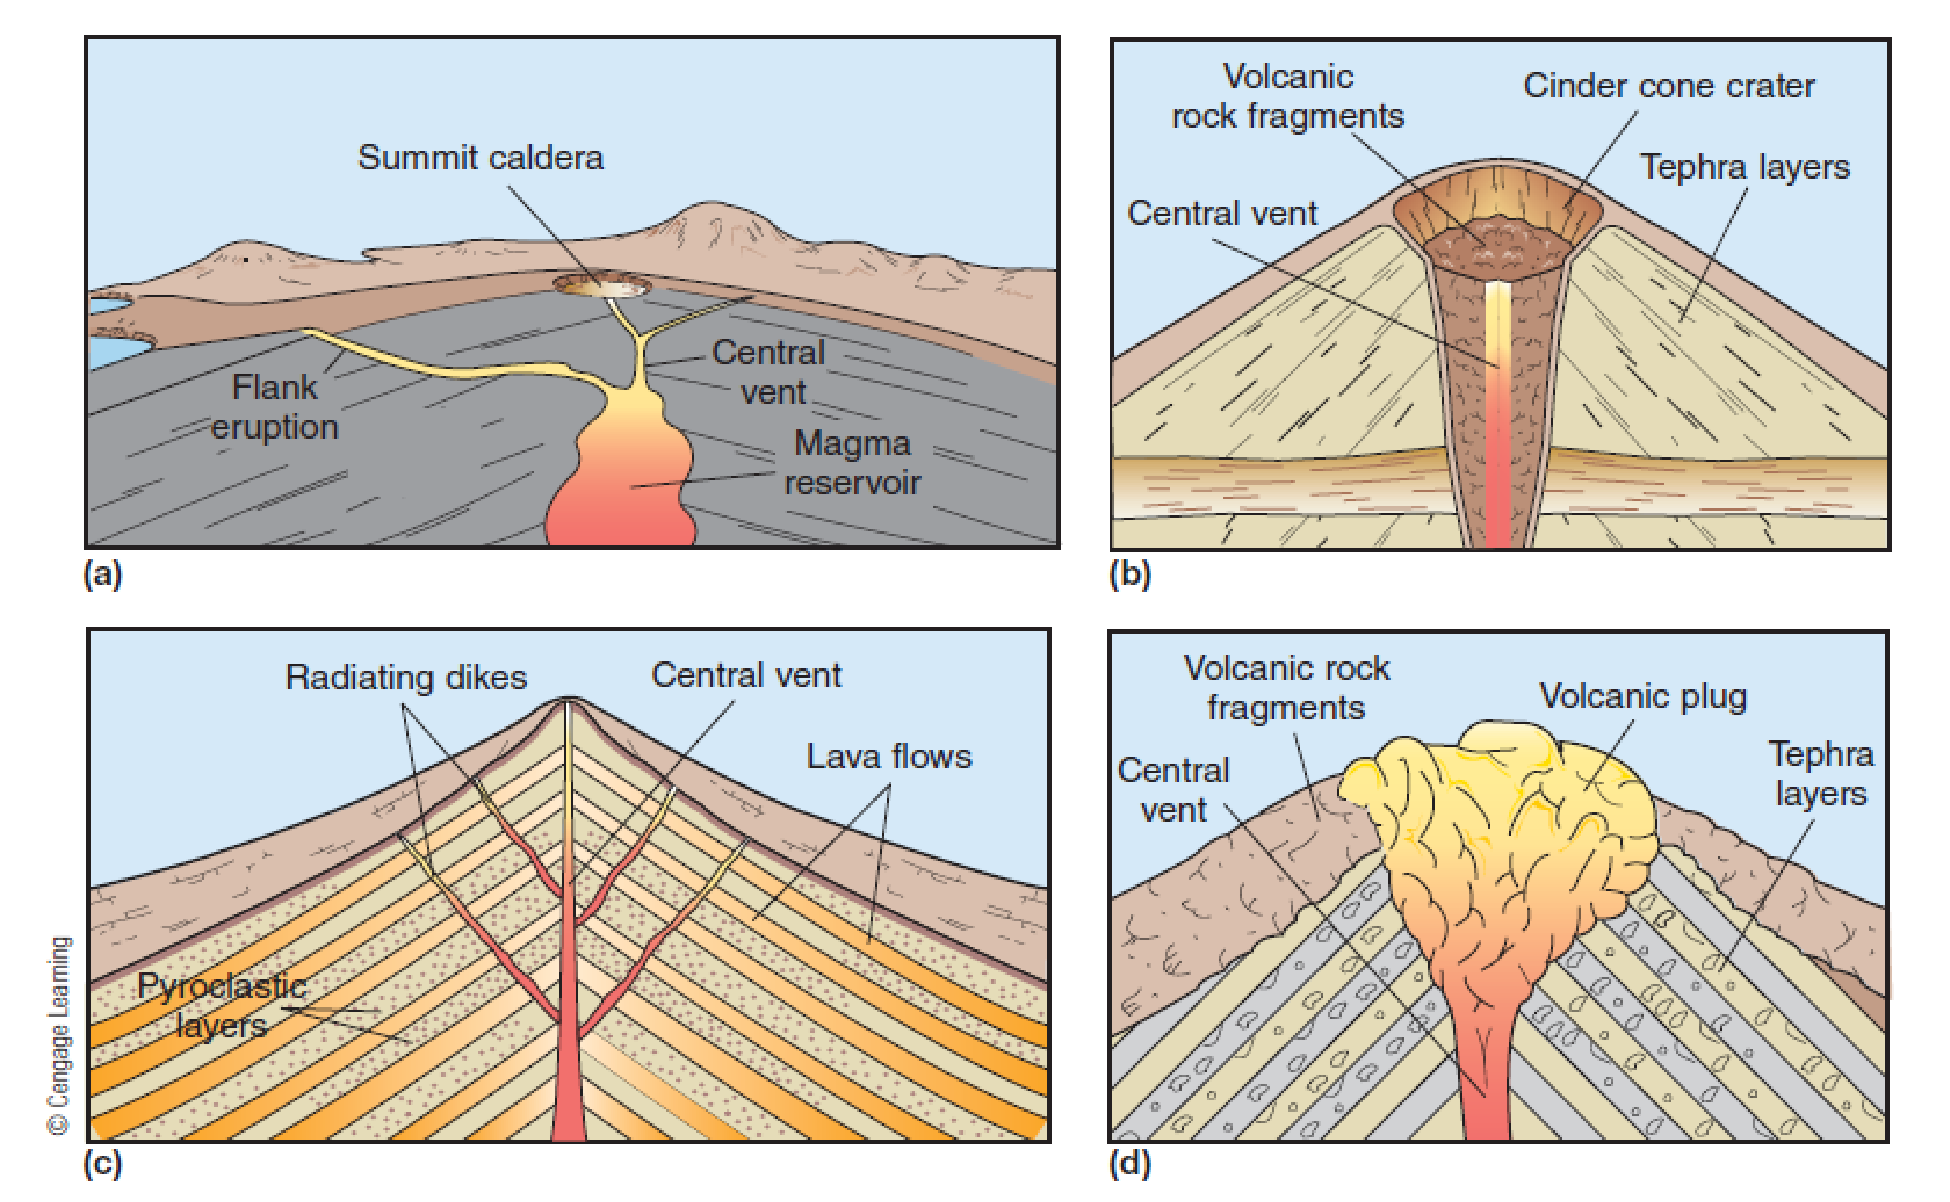 Chapter 11, Problem 25FQ, FIGURE 11.25 The four basic types of volcanoes are (a) shield volcano, (b) cinder cone, (c)